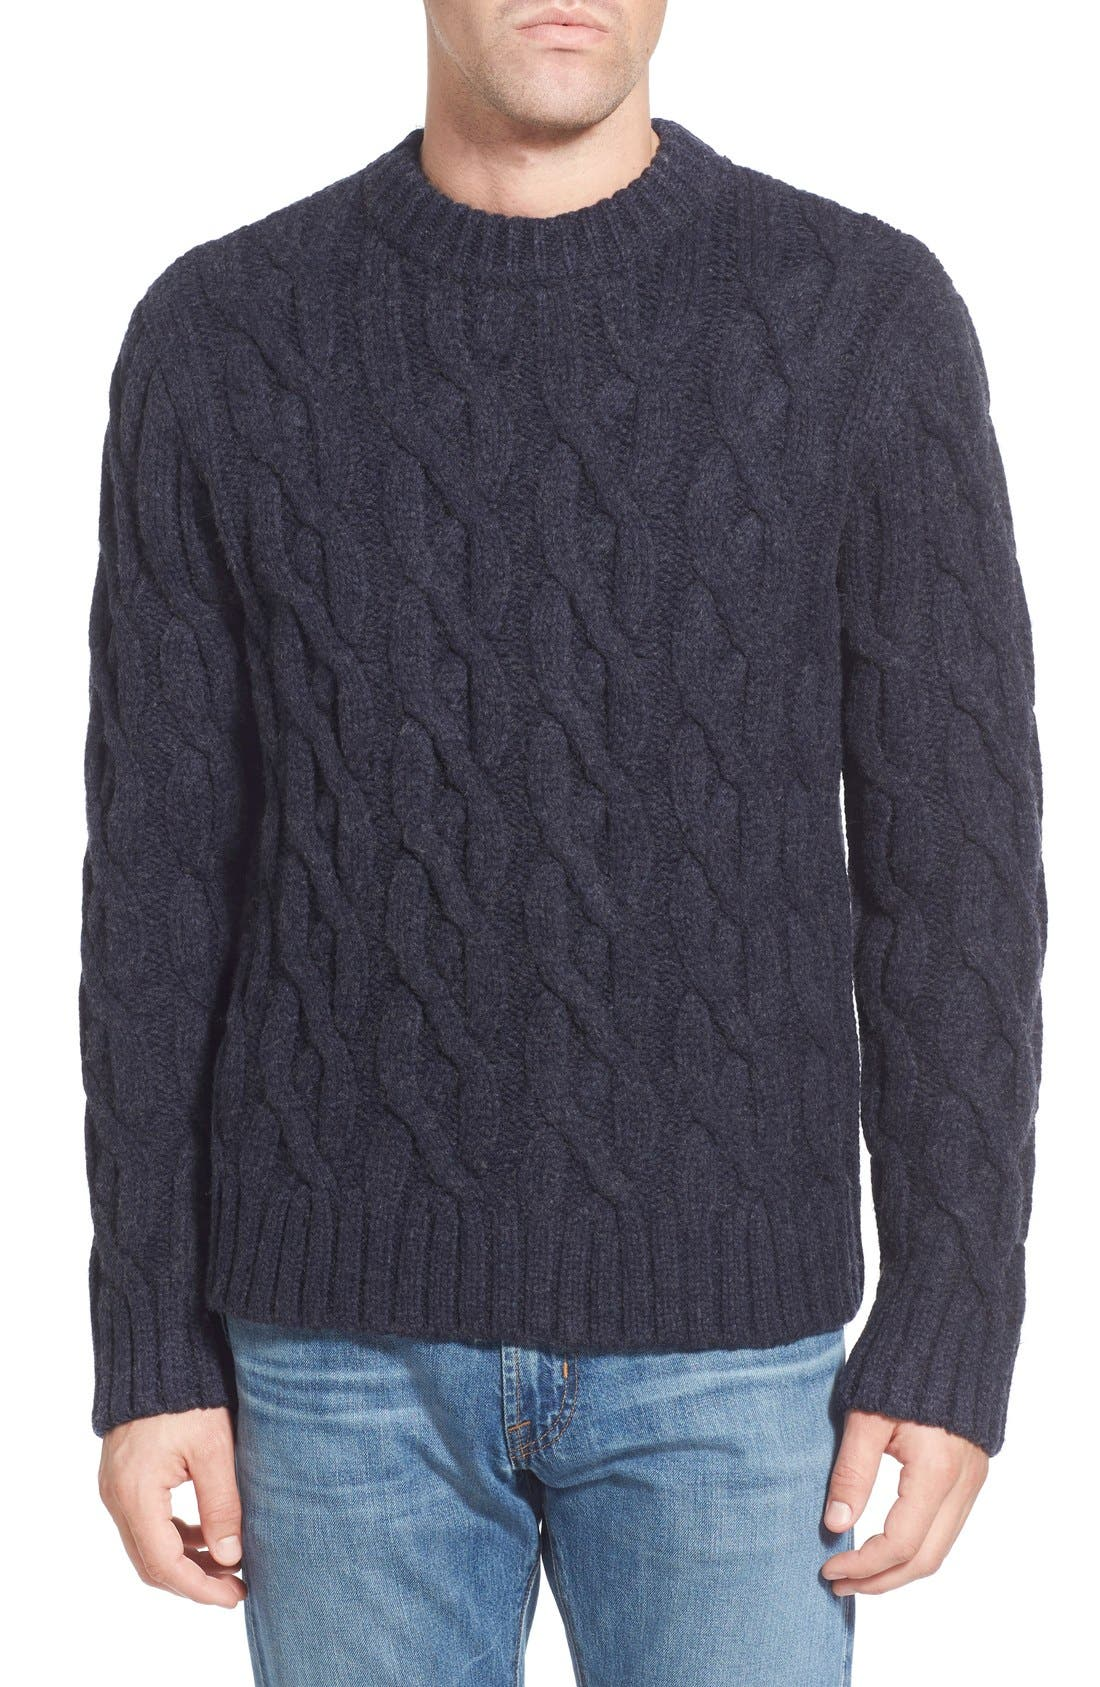 SCHOTT NYC,                             Regular Fit Cable Knit Crewneck Wool Blend Sweater,                             Main thumbnail 1, color,                             410